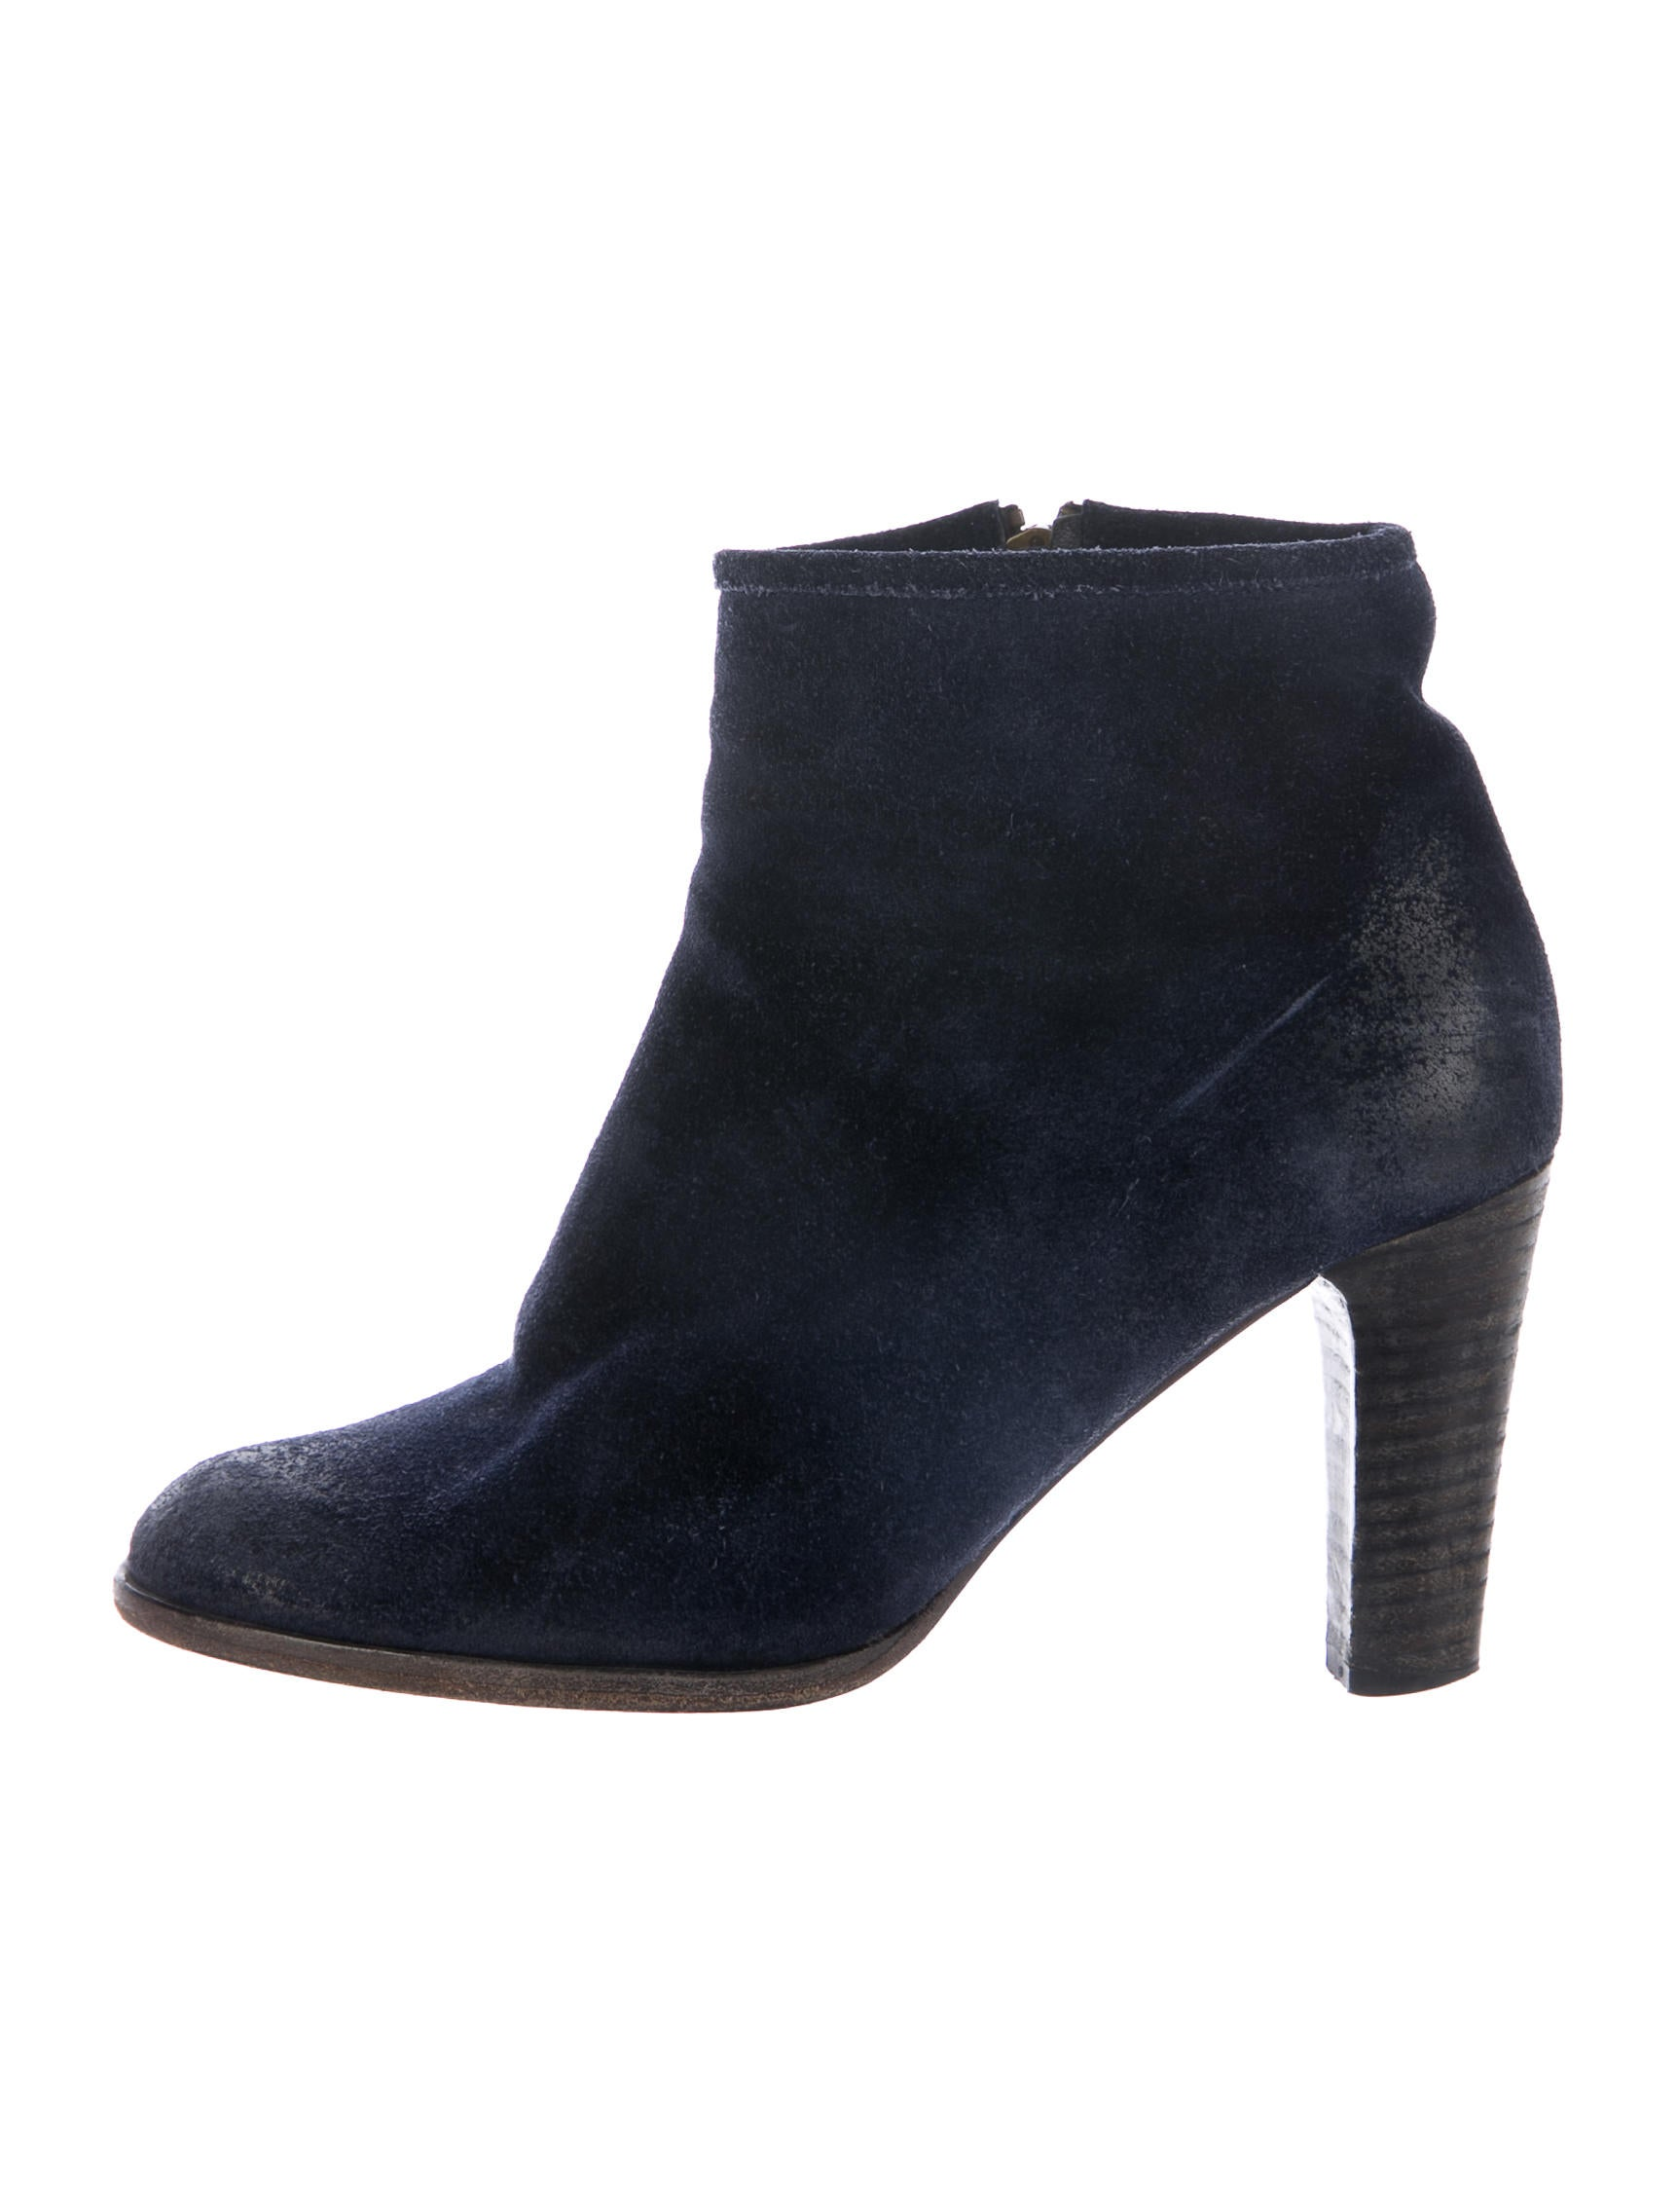 n d c distressed suede ankle boots shoes wnd20074